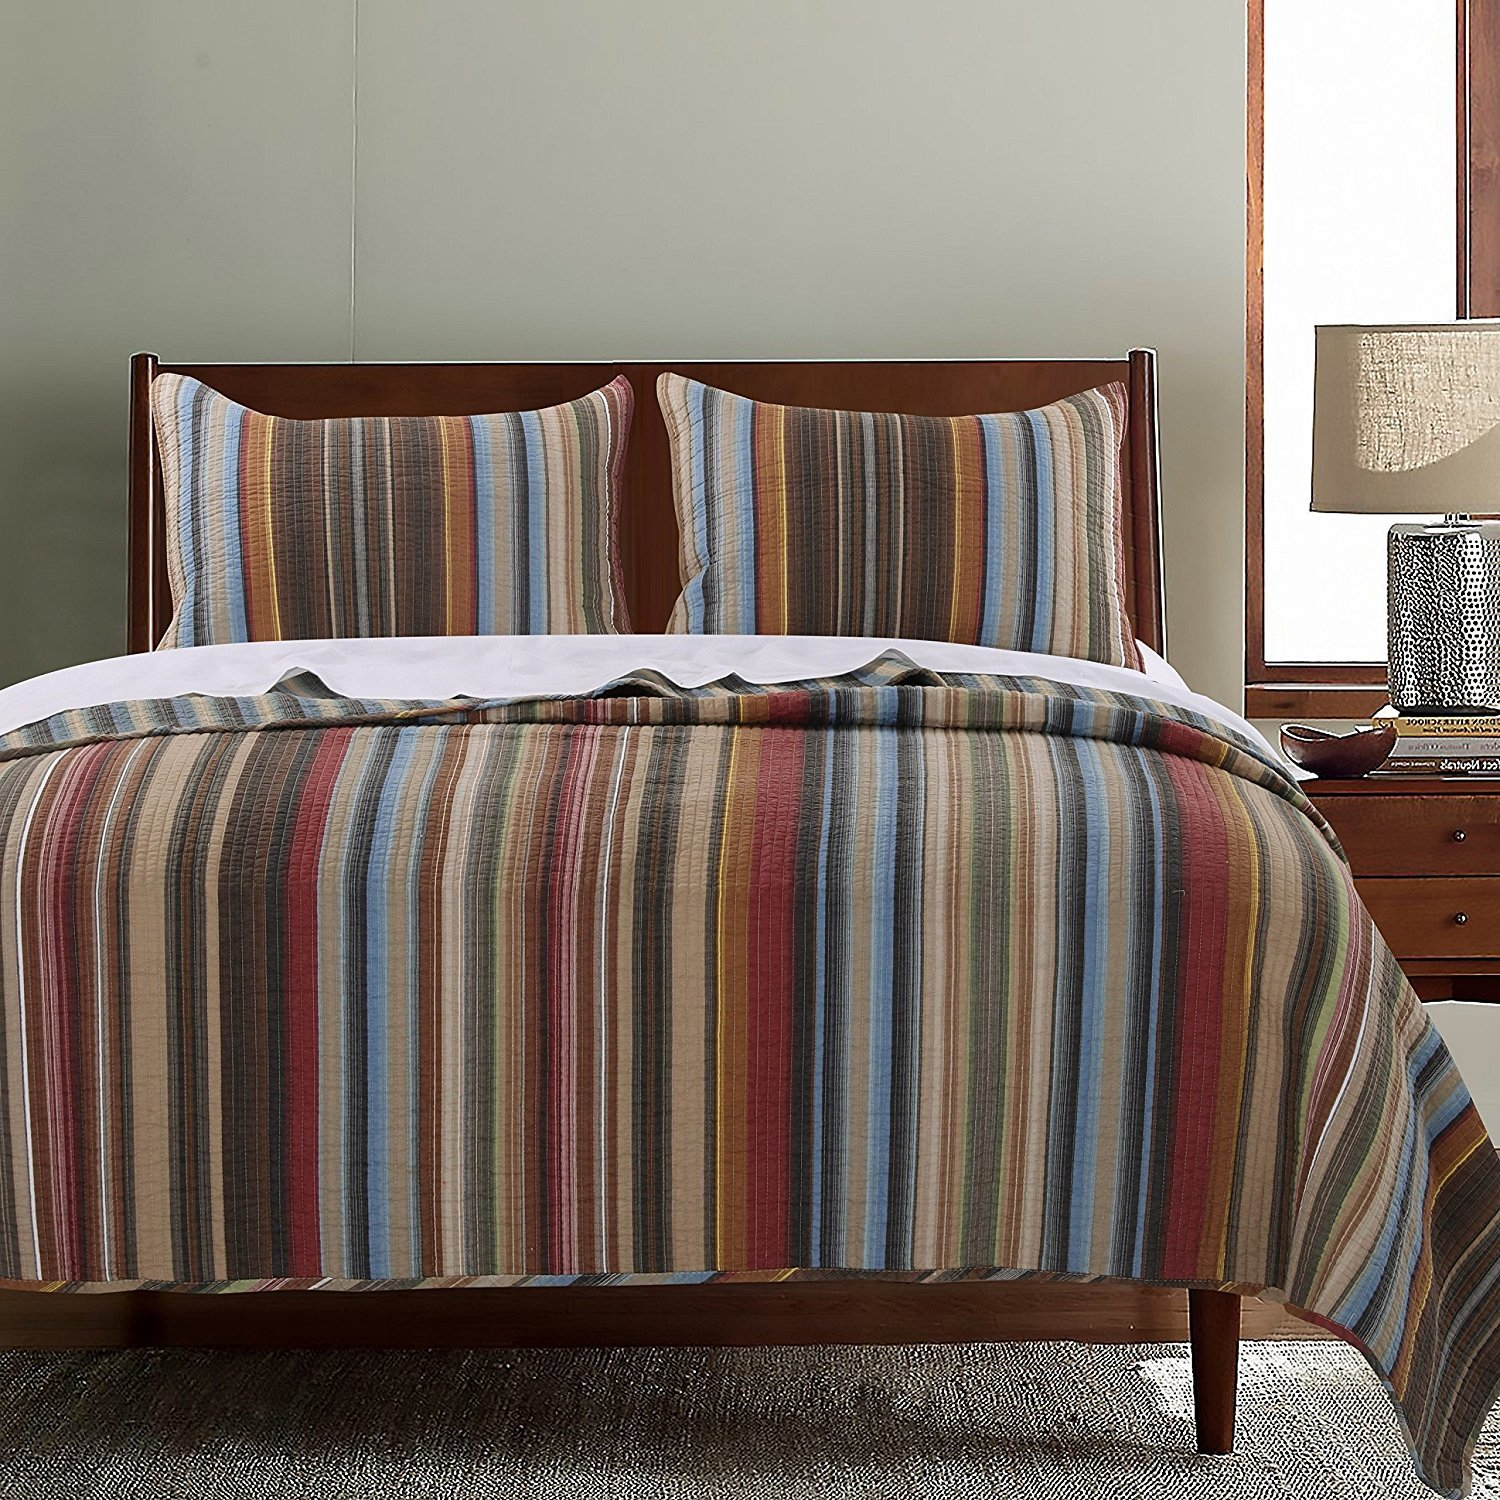 2pc Western Color Stripe Quilt Twin Set, Southwest Spirit Striped Bedding, Blue Beige Brown Burgundy Dark Red Burnt Orange, Traditional Country Southwestern Vertical Stripes Themed Pattern